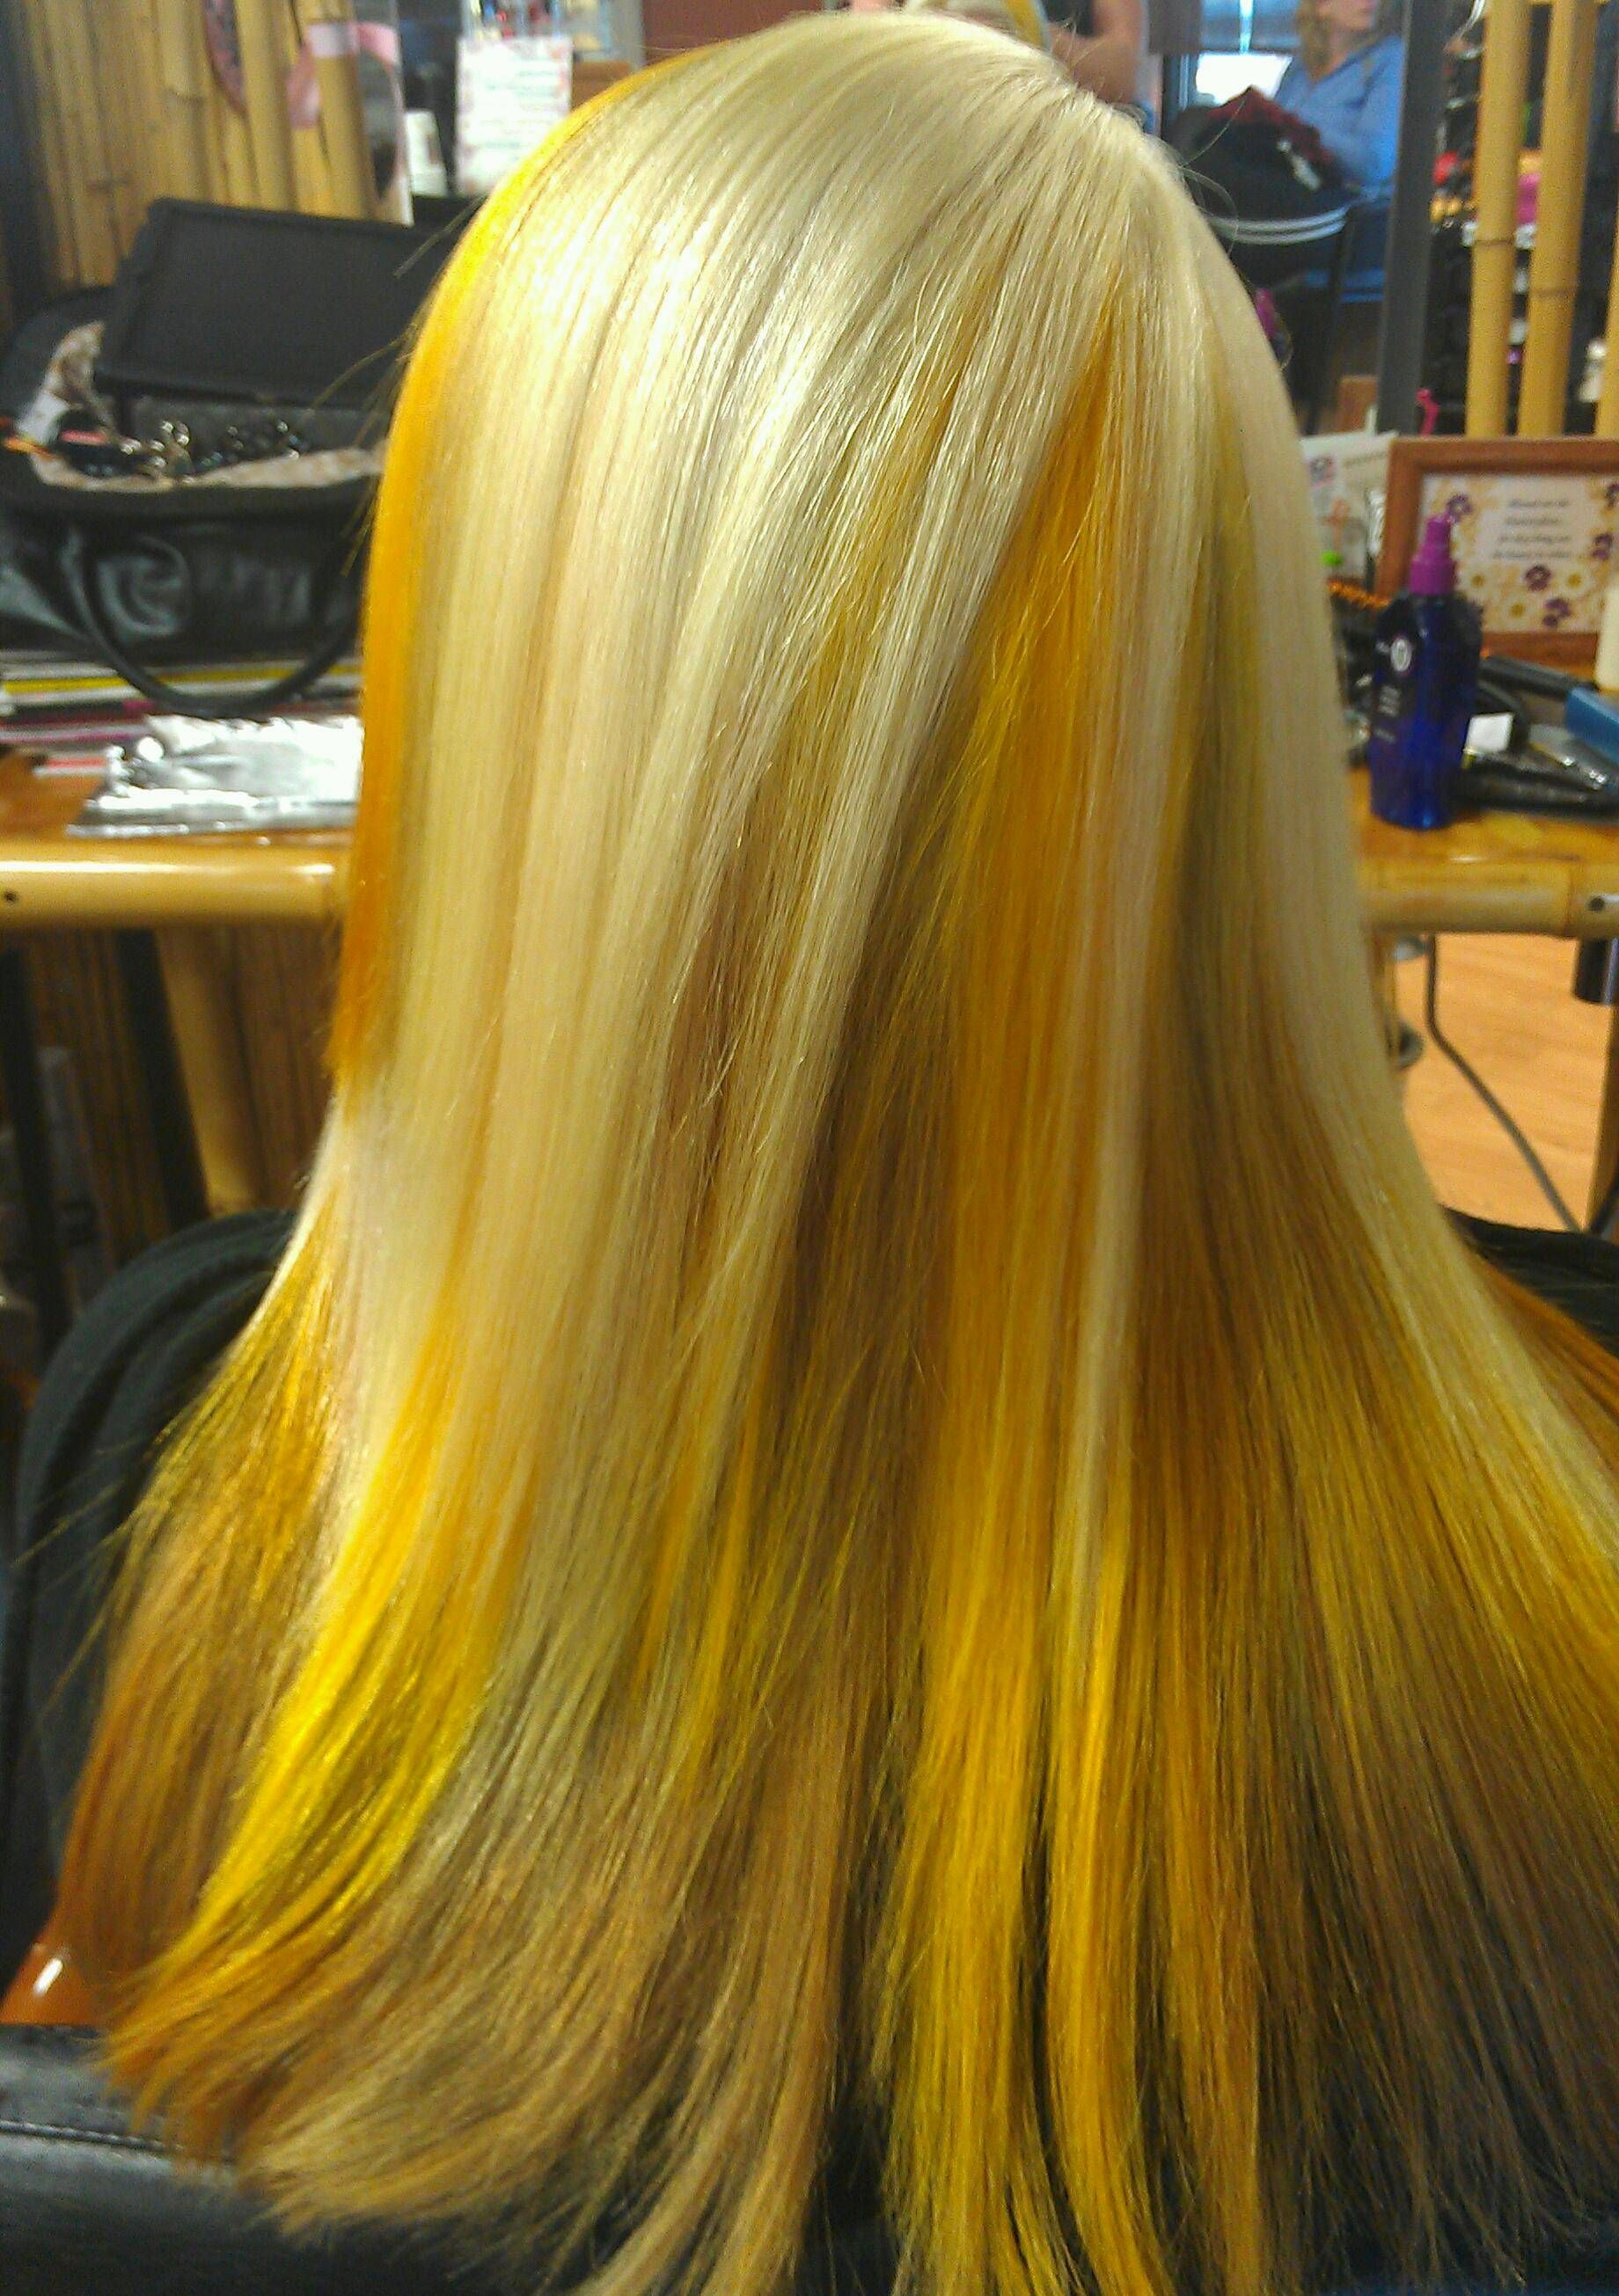 My Work Hair Yellow Blonde Funky Bright Colors Scrupels